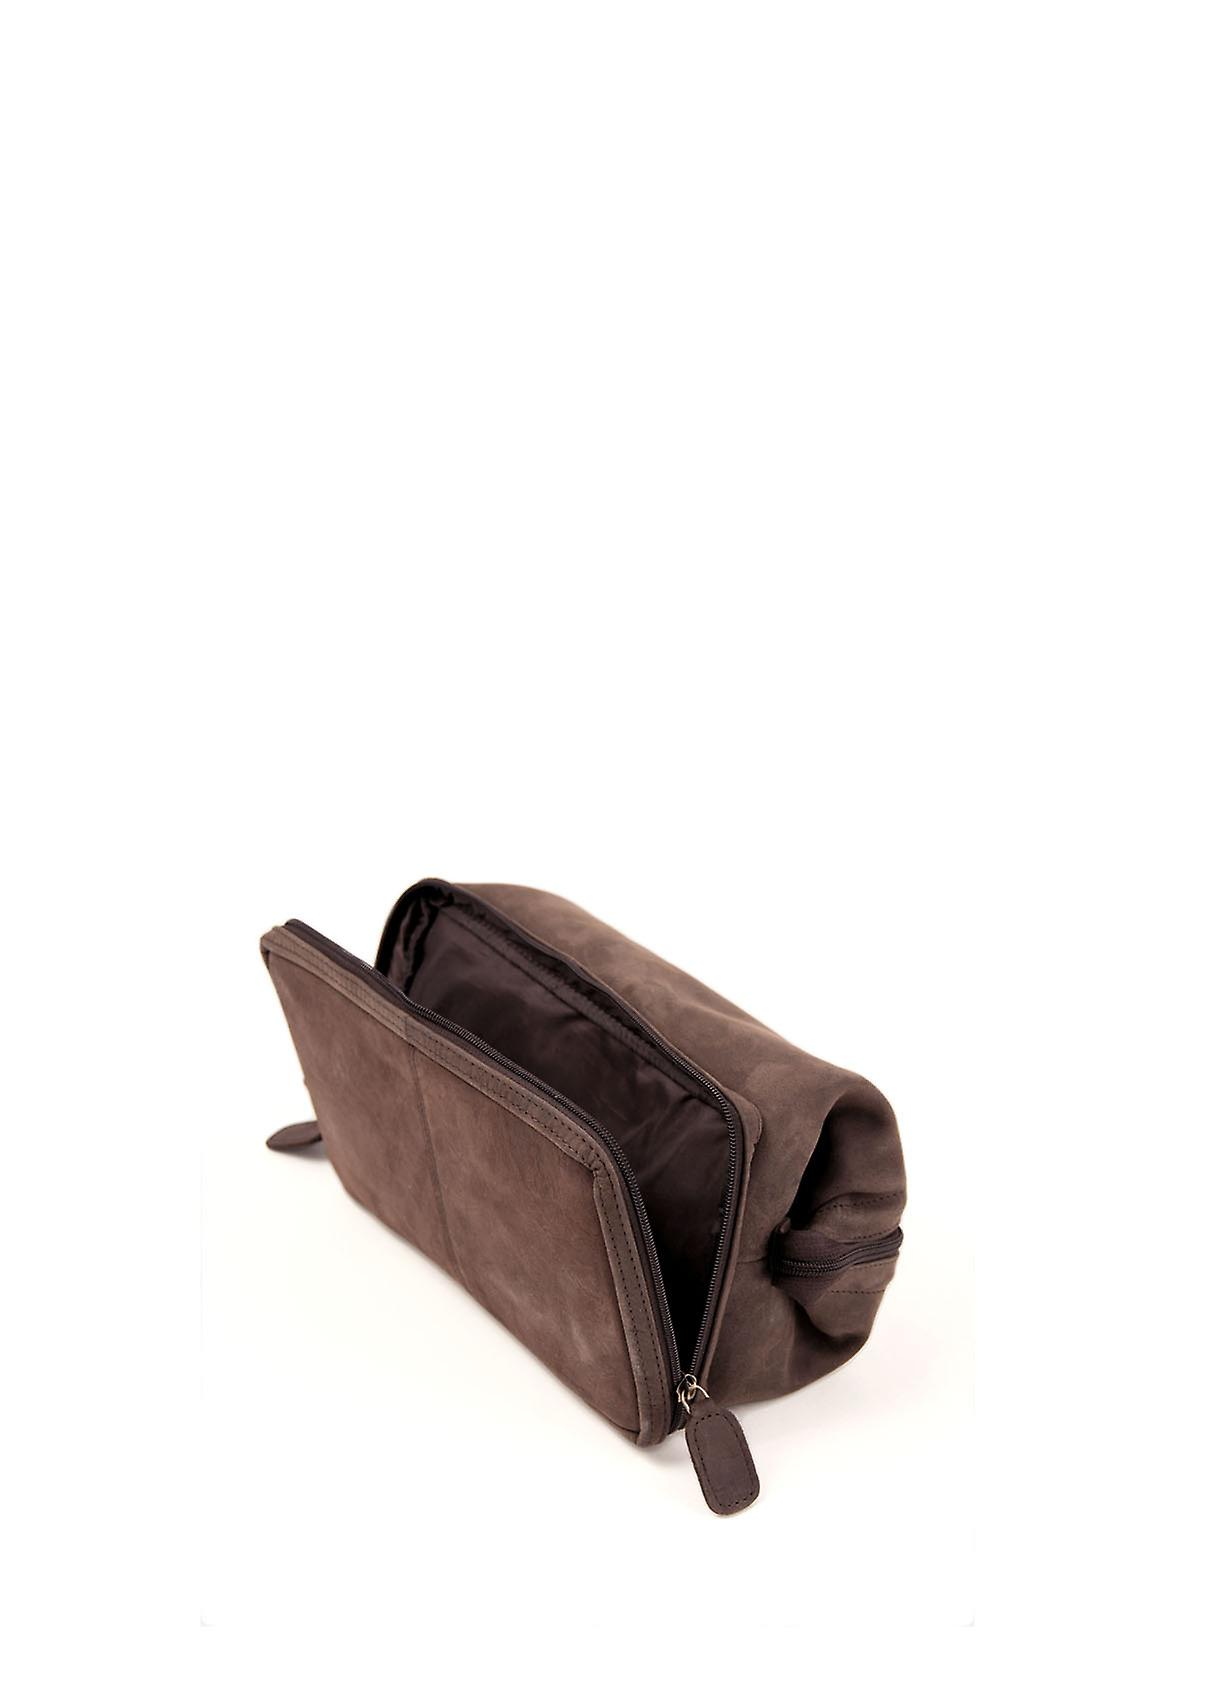 Hunter Leather Wash Bag in Chocolate